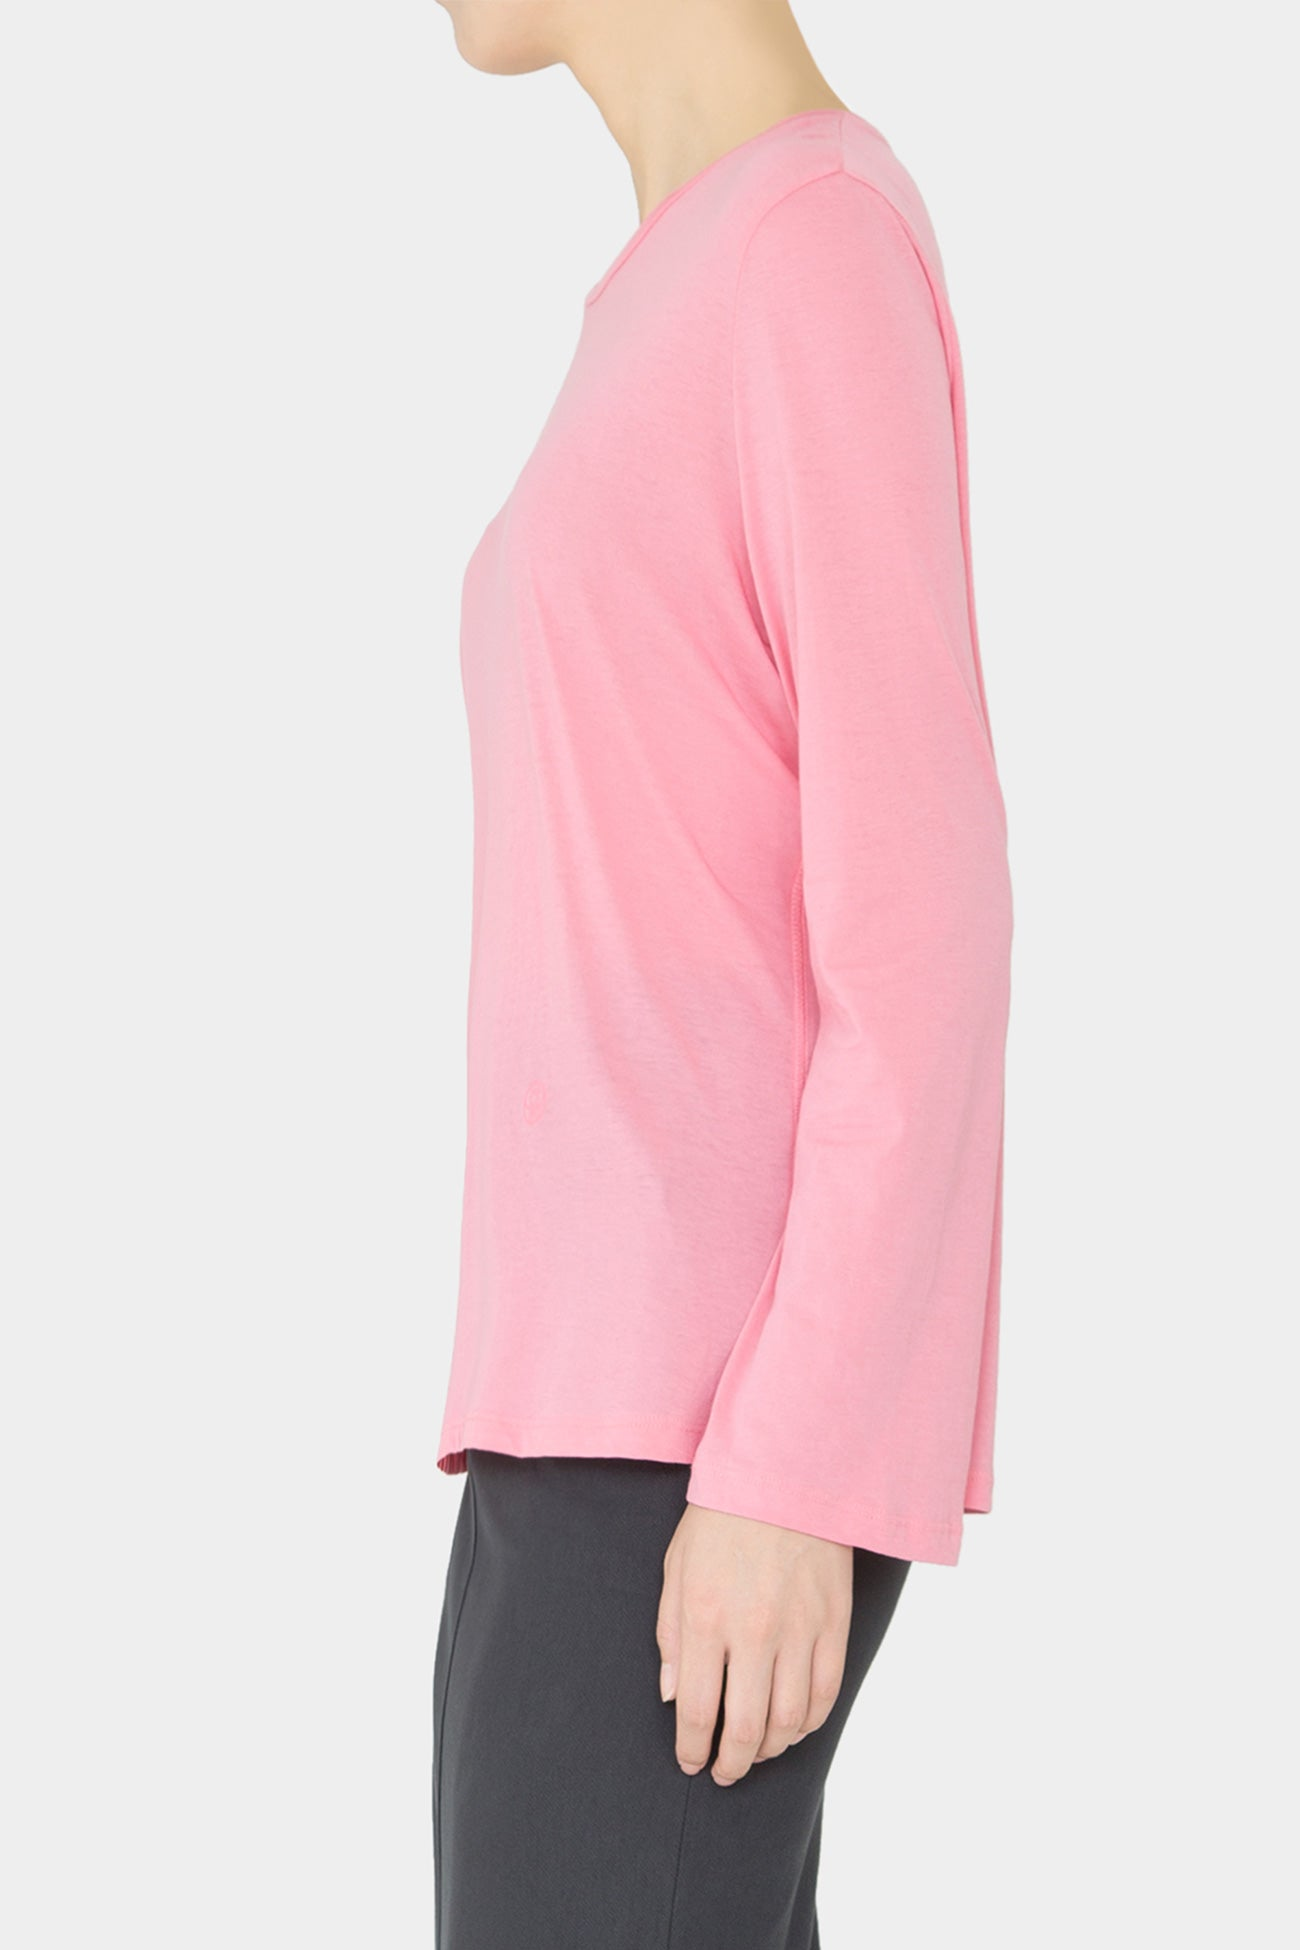 WATERMELON PINK LIO BELLSLEEVE T-SHIRT